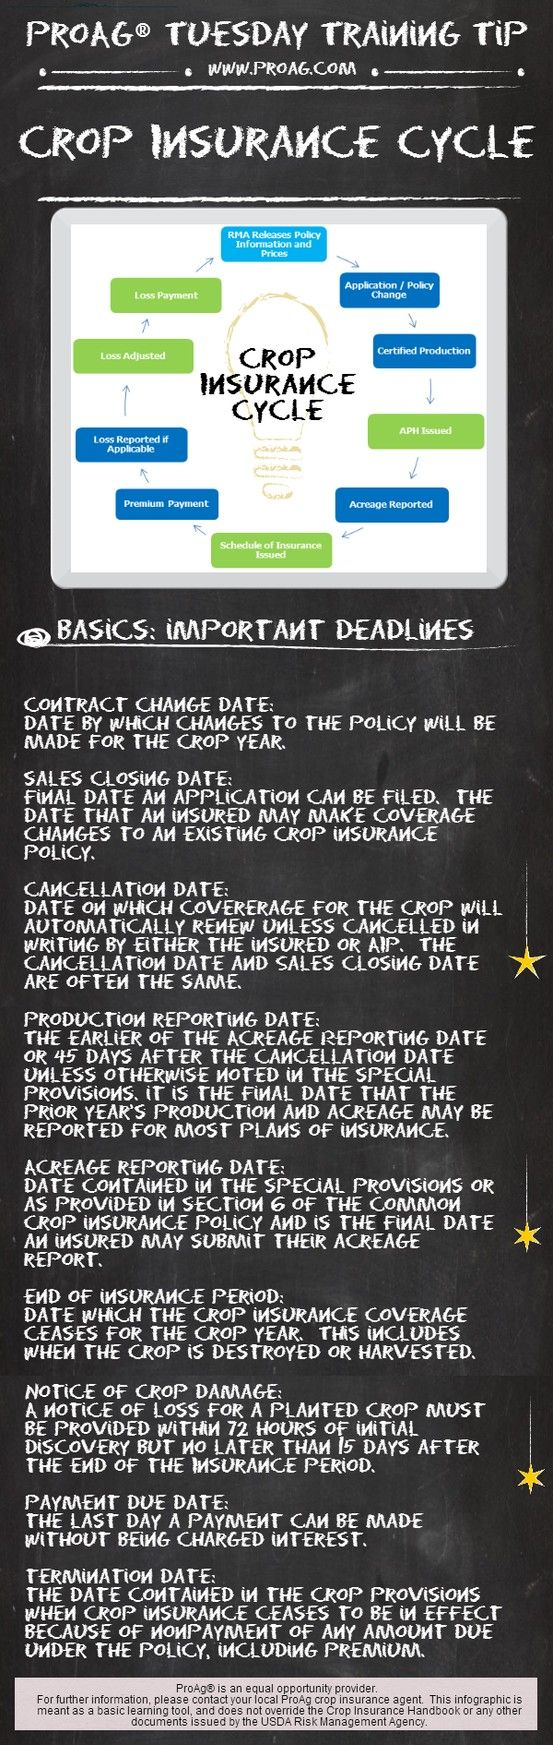 ProAg® Tuesday Training Tip - Crop Insurance Cycle: RMA and insurance industry activities follow a timetable known as the annual crop insurance cycle. We hope this infographic helps you understand the cycle a little bit better. Feel free to Pin or Like!